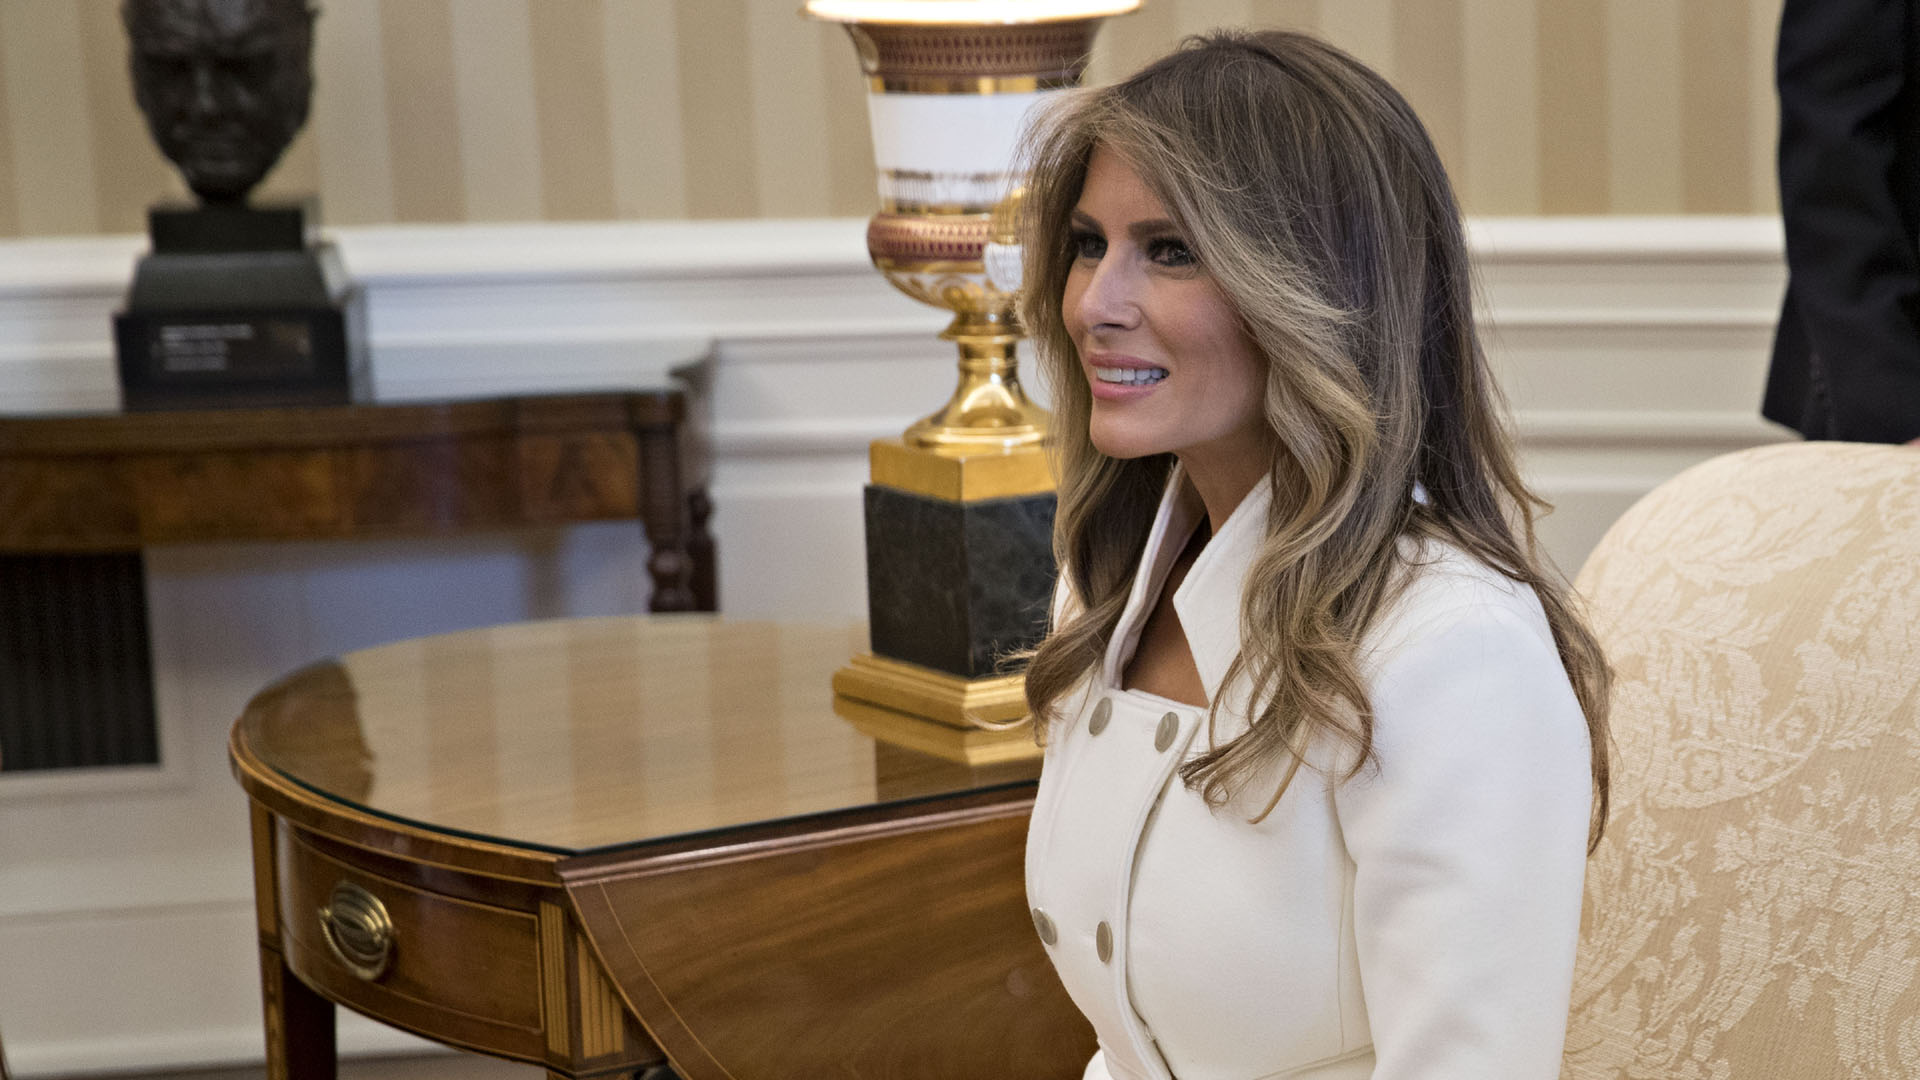 Melania Trump in oval office, February 201729108853-159532